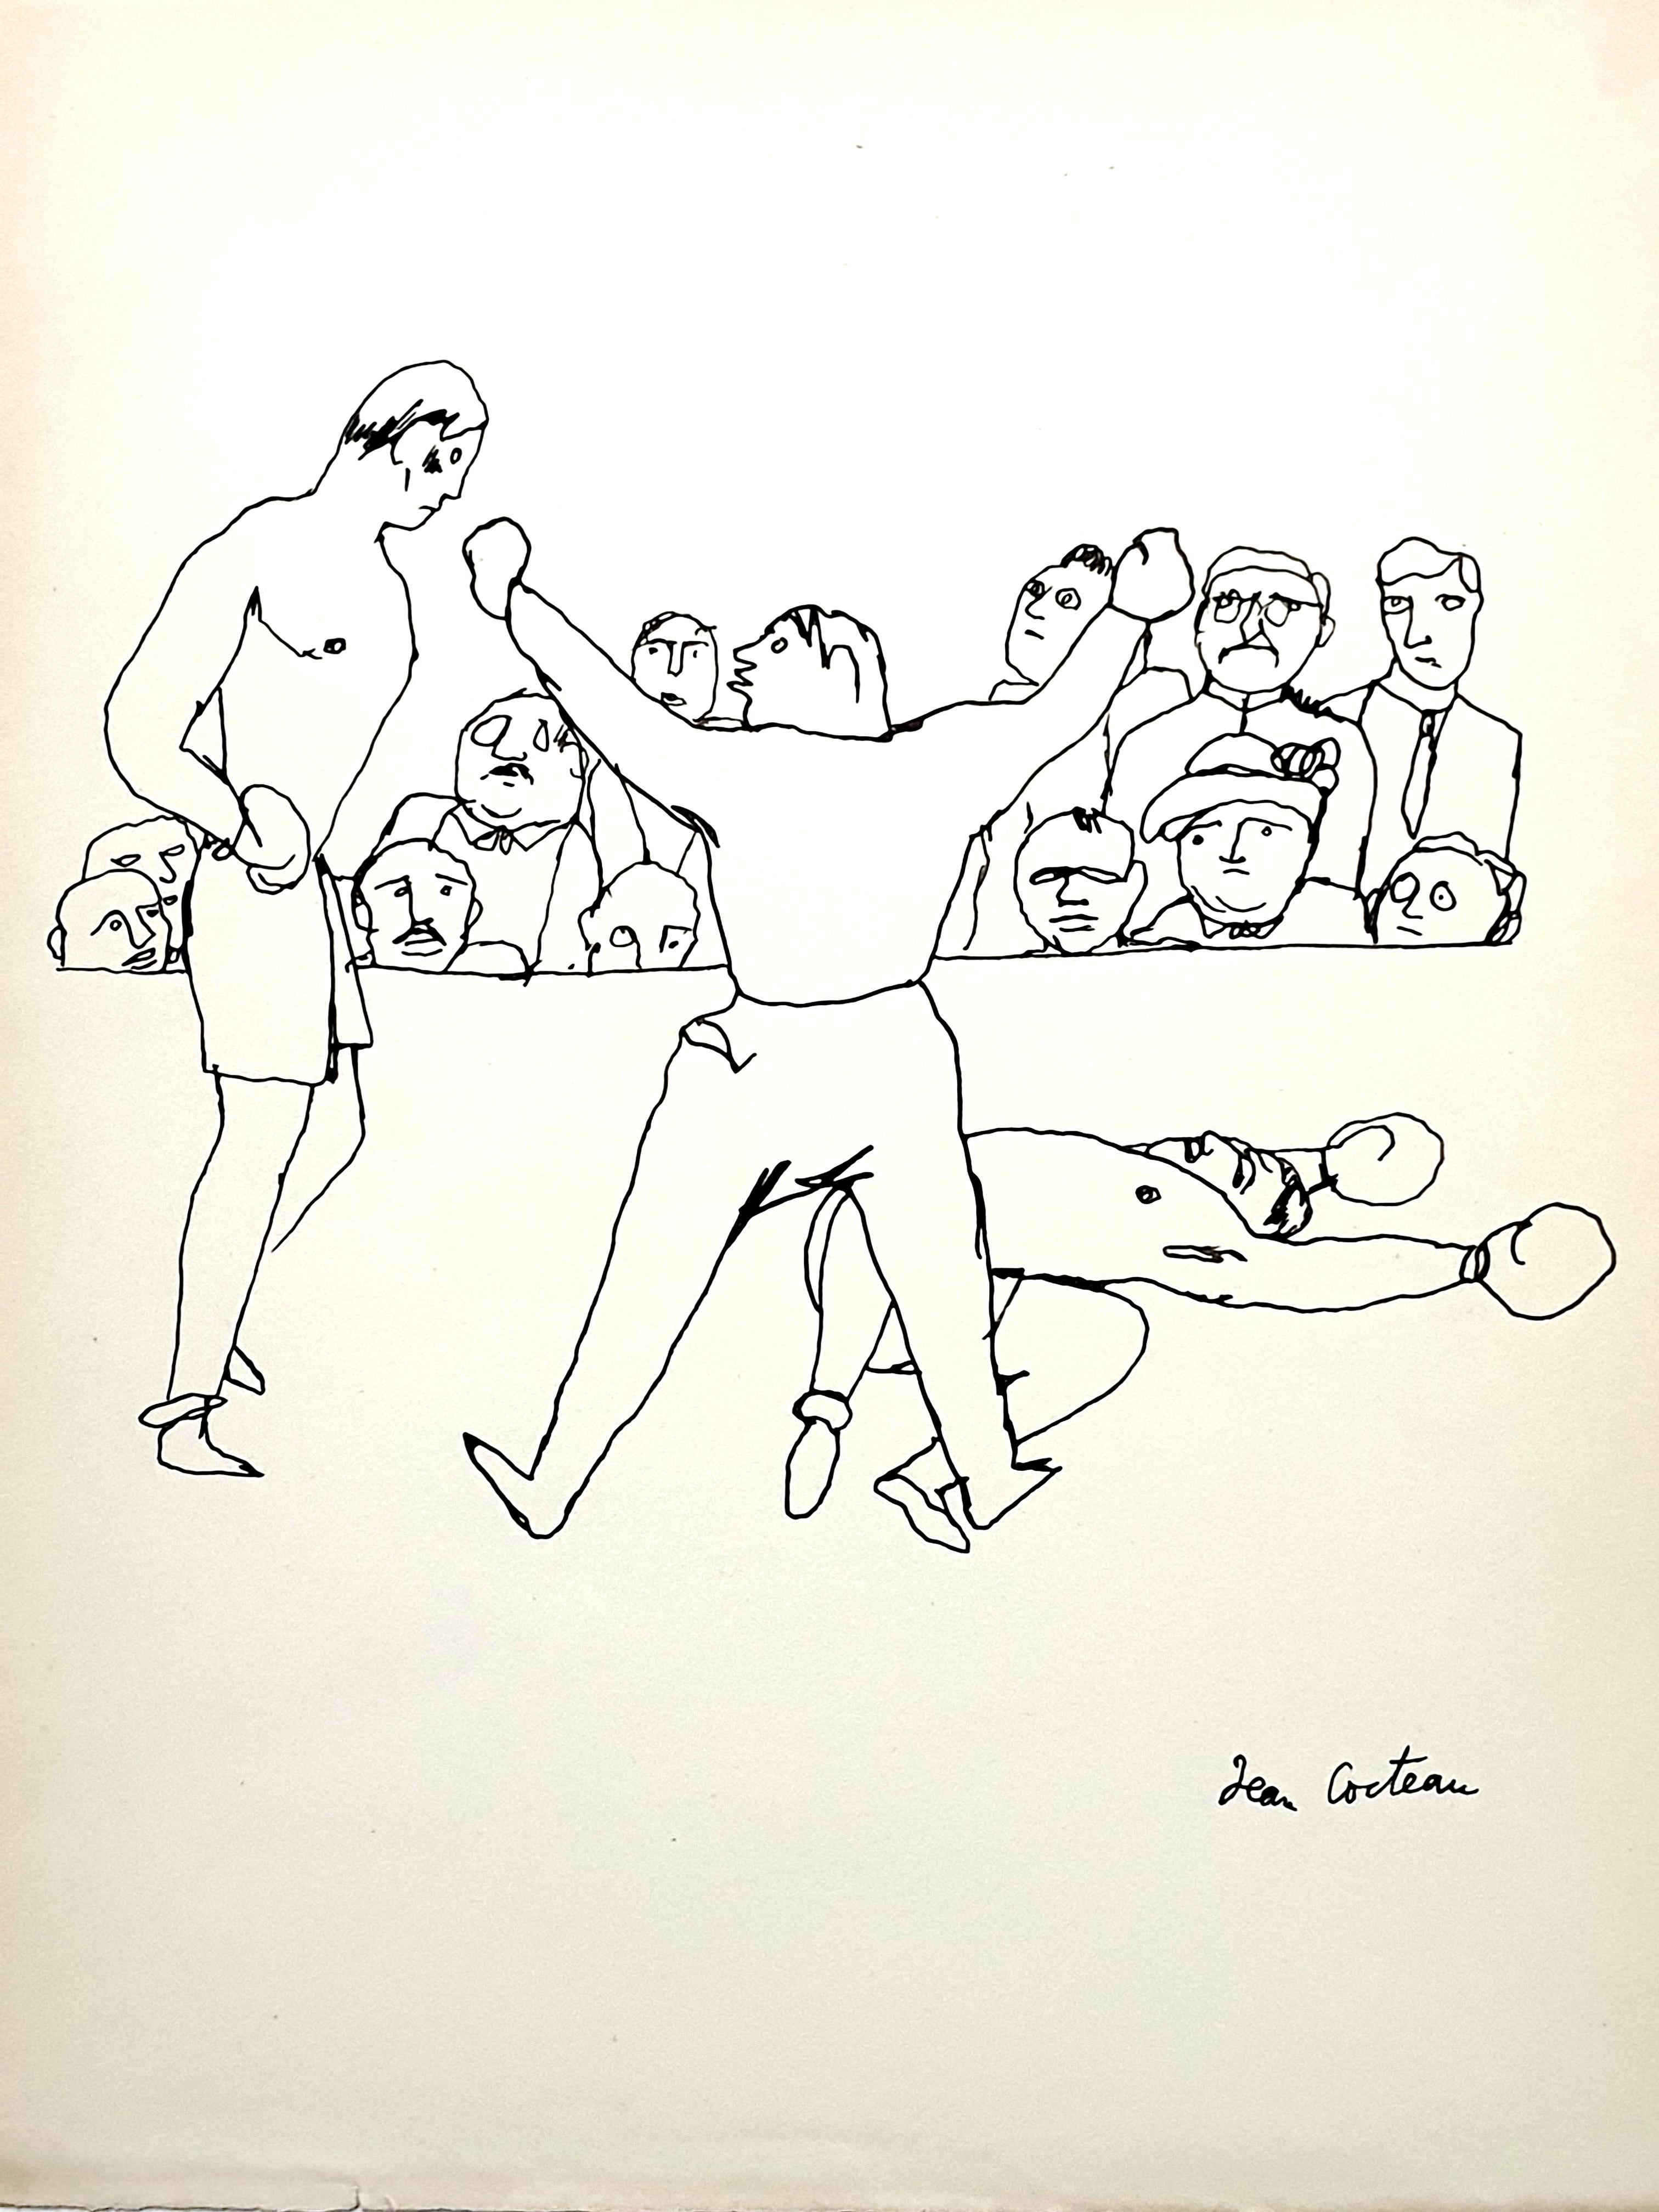 Jean Cocteau - The Fight - Original Signed Drawing